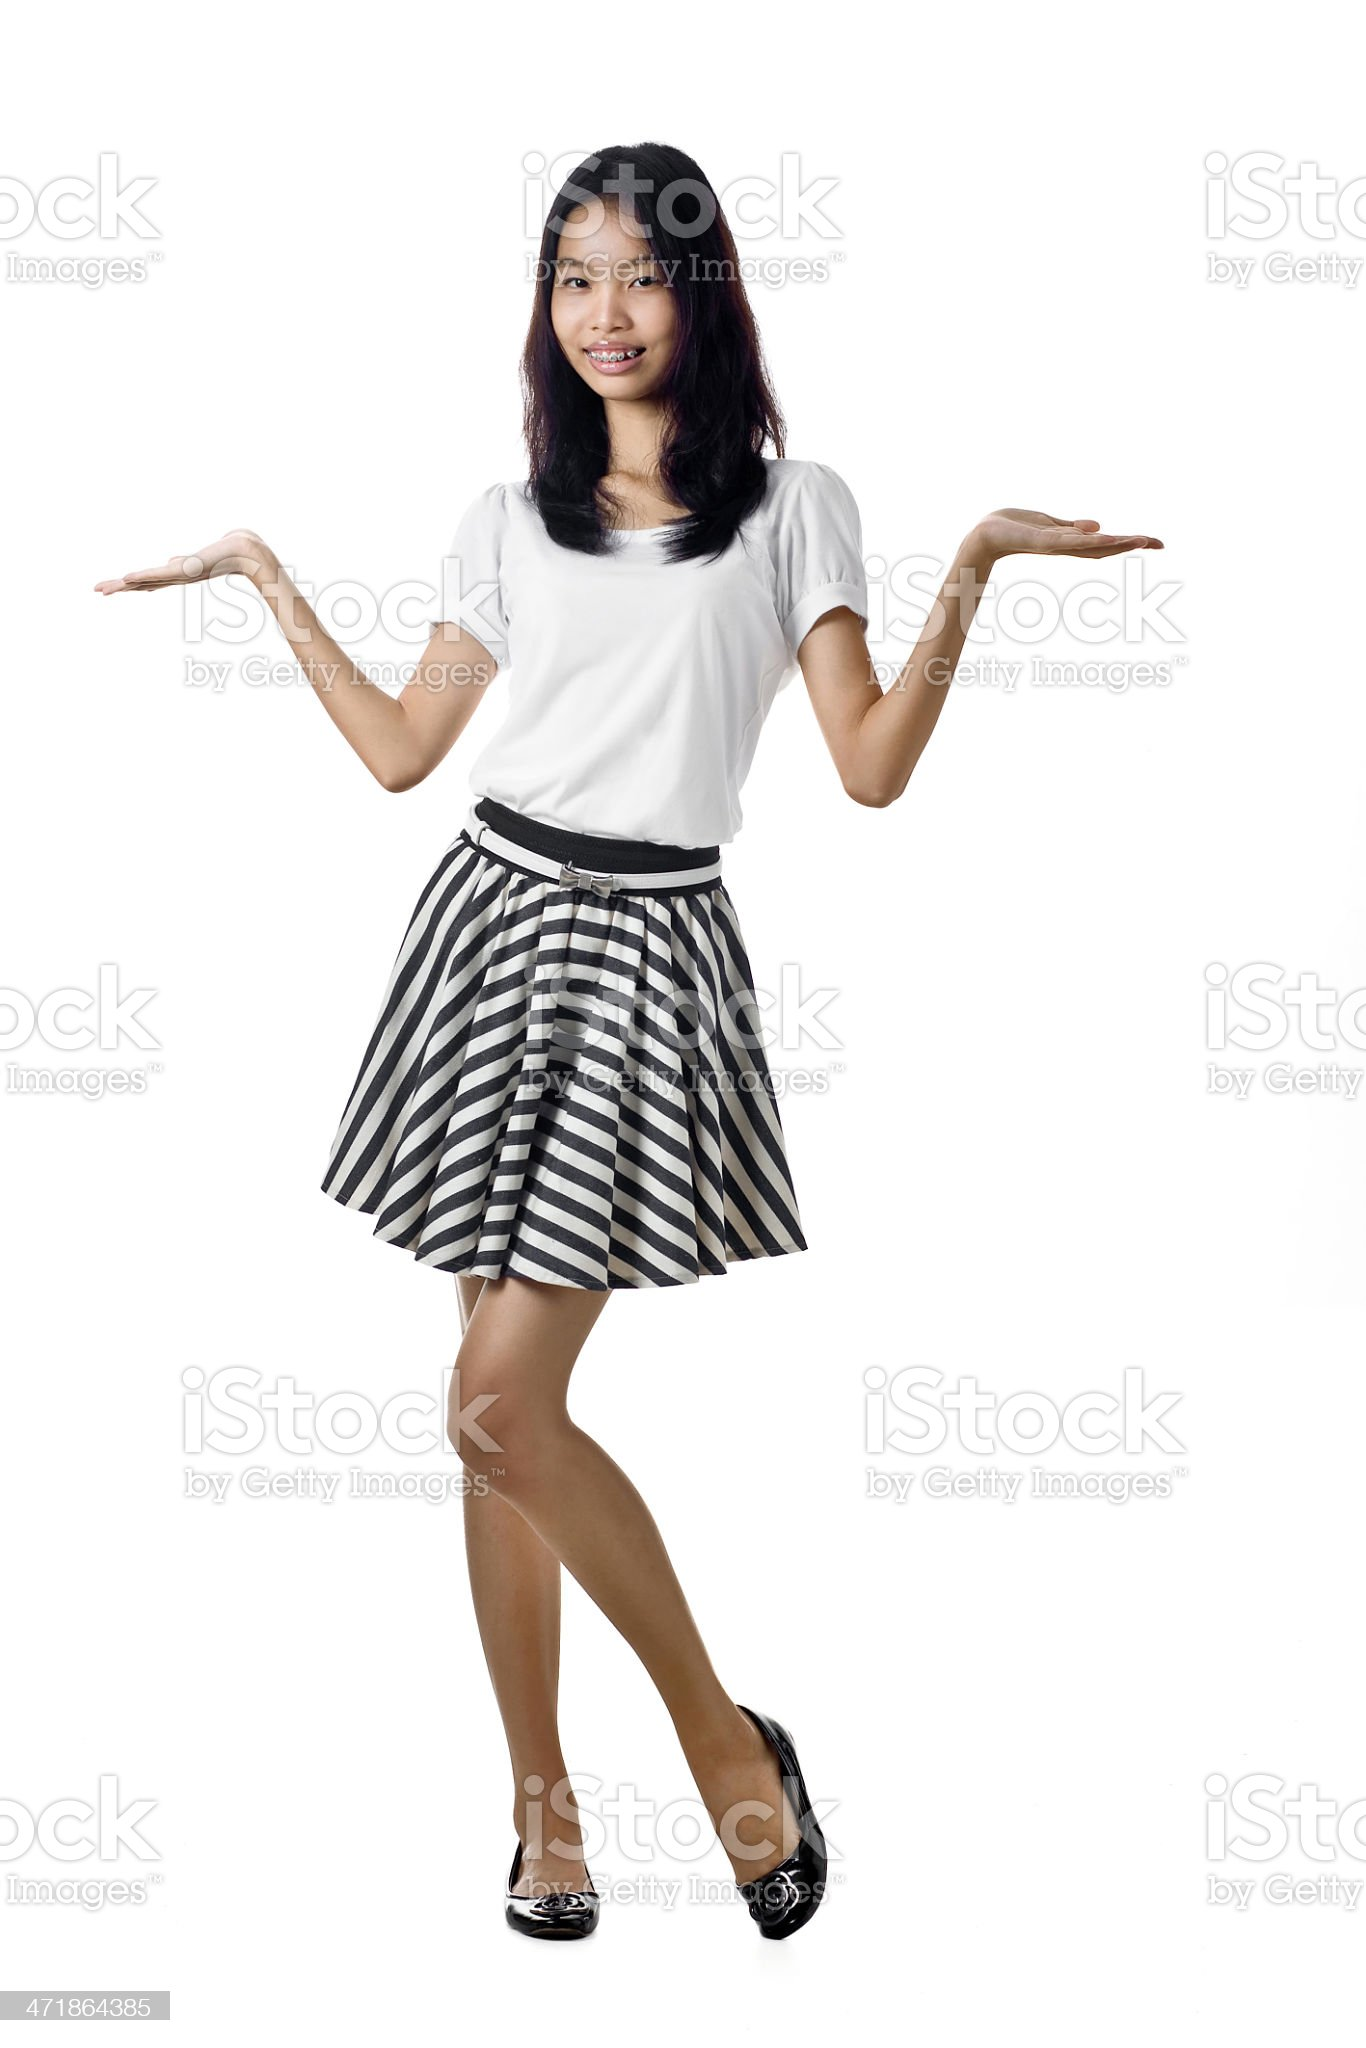 Friendly Asian girl Isolated royalty-free stock photo